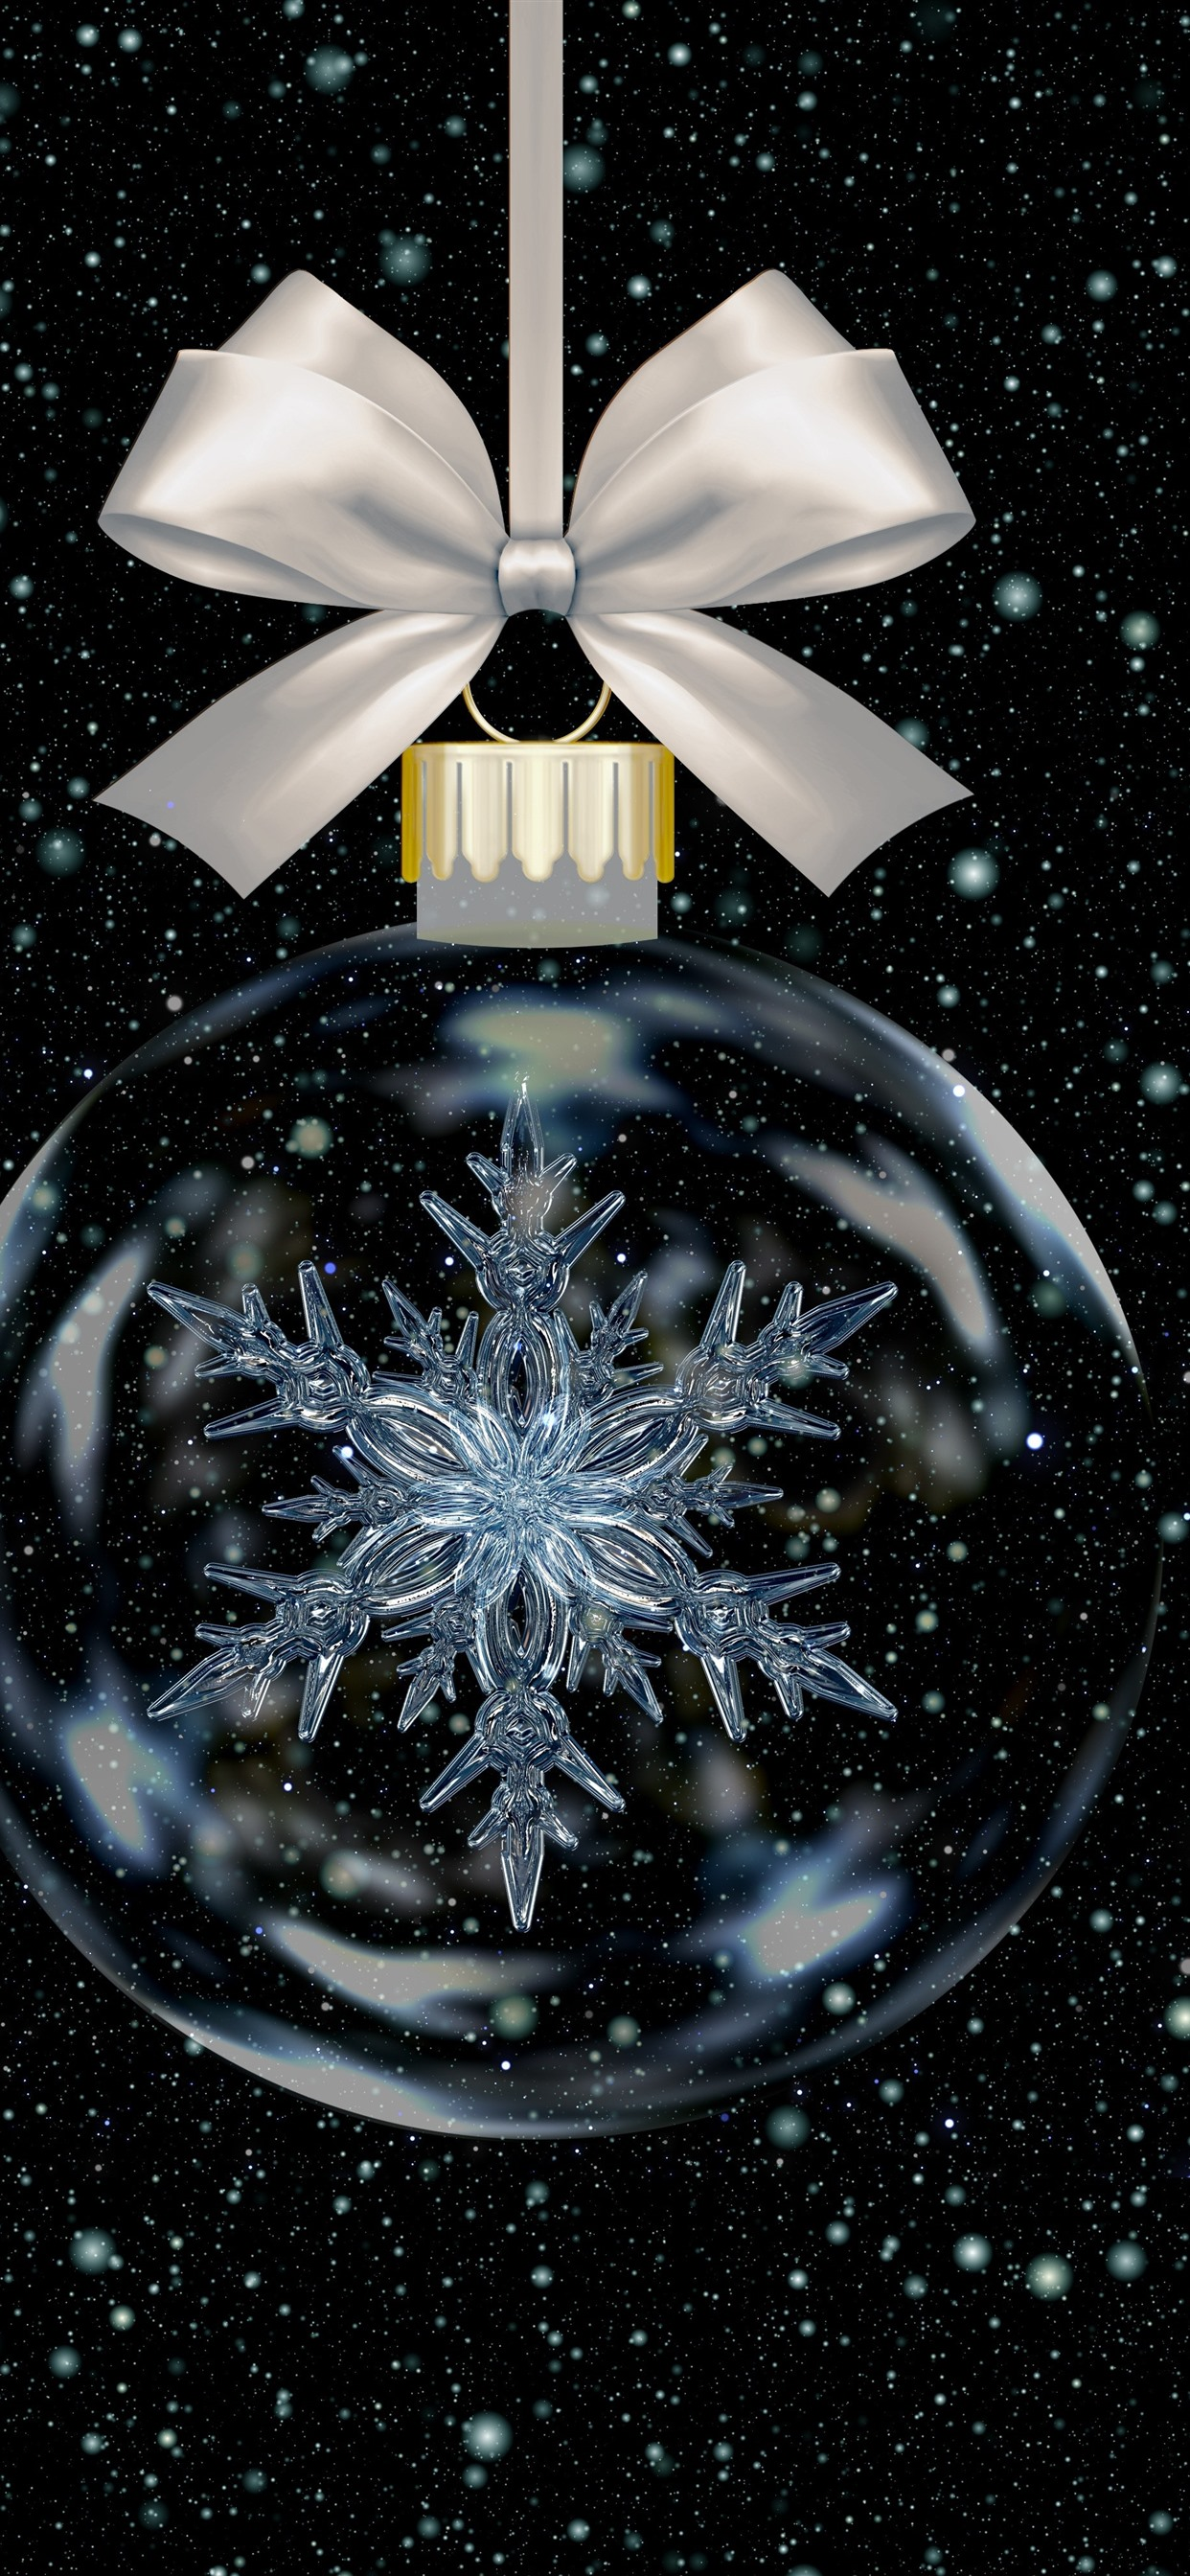 Christmas Ball Snowflake Snow 1242x2688 Iphone 11 Pro Xs Max Wallpaper Background Picture Image